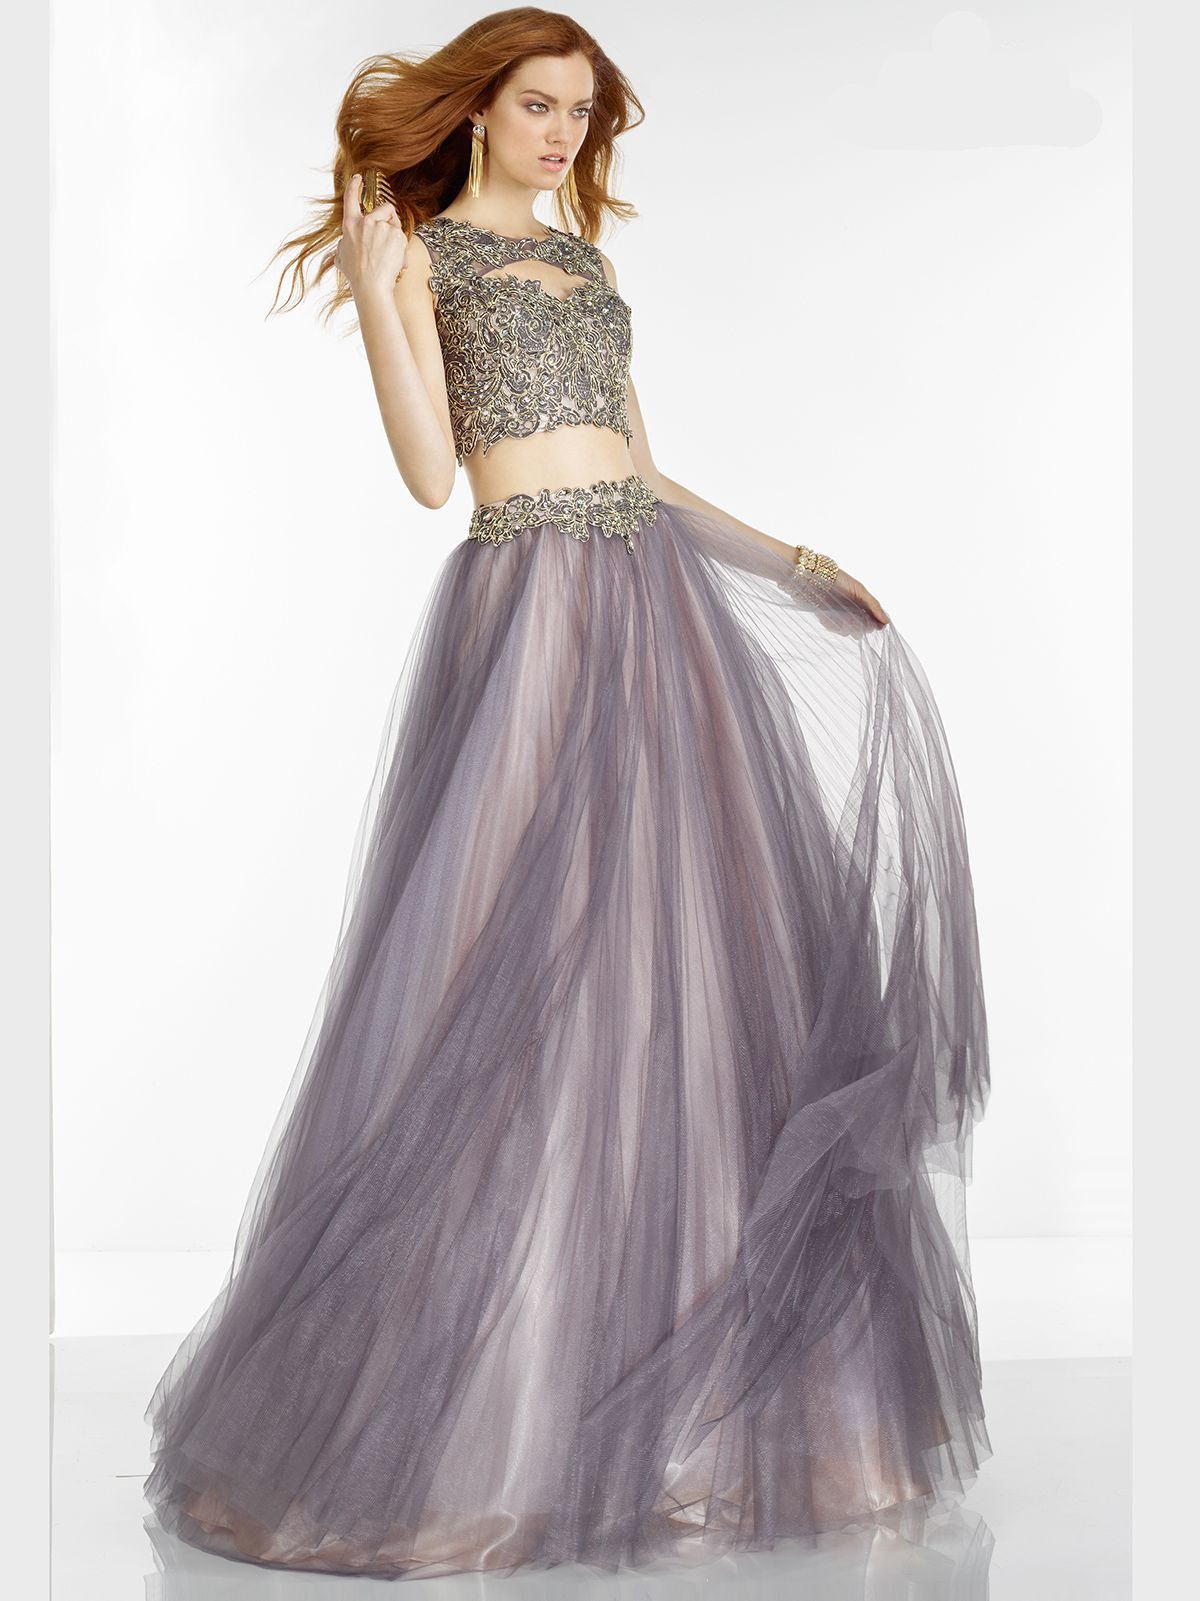 This fabulous two piece ball gown is sure to turn heads at your prom